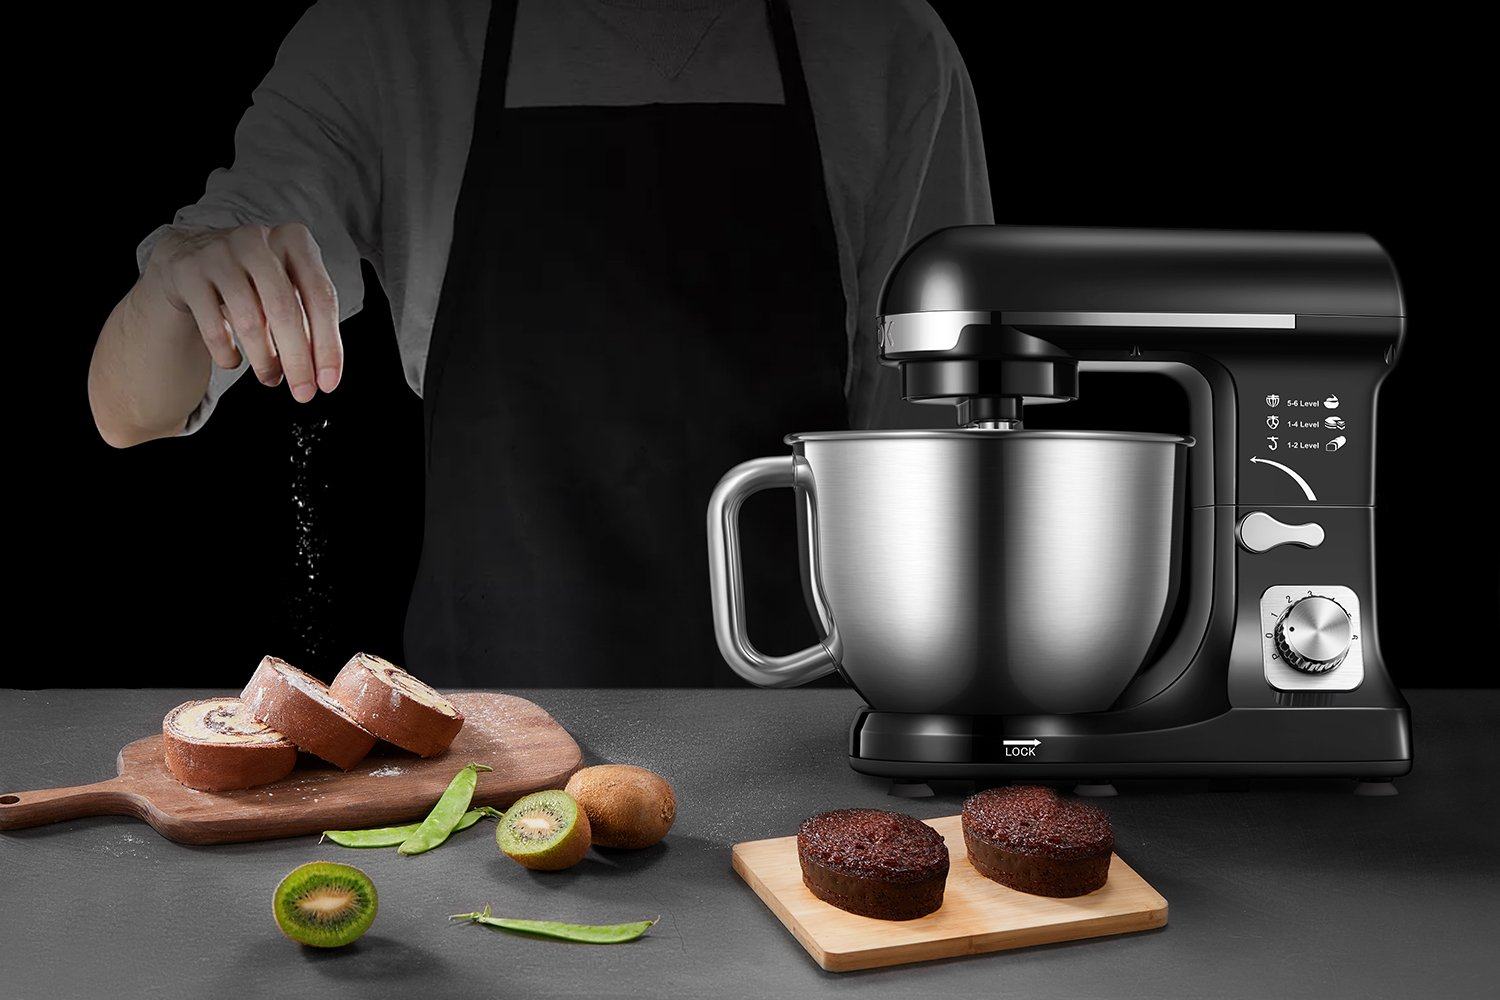 Stand Mixer, Aicok Dough Mixer with 5 Qt Stainless Steel Bowl, 500W 6 Speeds Tilt-Head Food Mixer, Kitchen Electric Mixer with Double Dough Hooks, Whisk, Beater, Pouring Shield, Black by AICOK (Image #7)